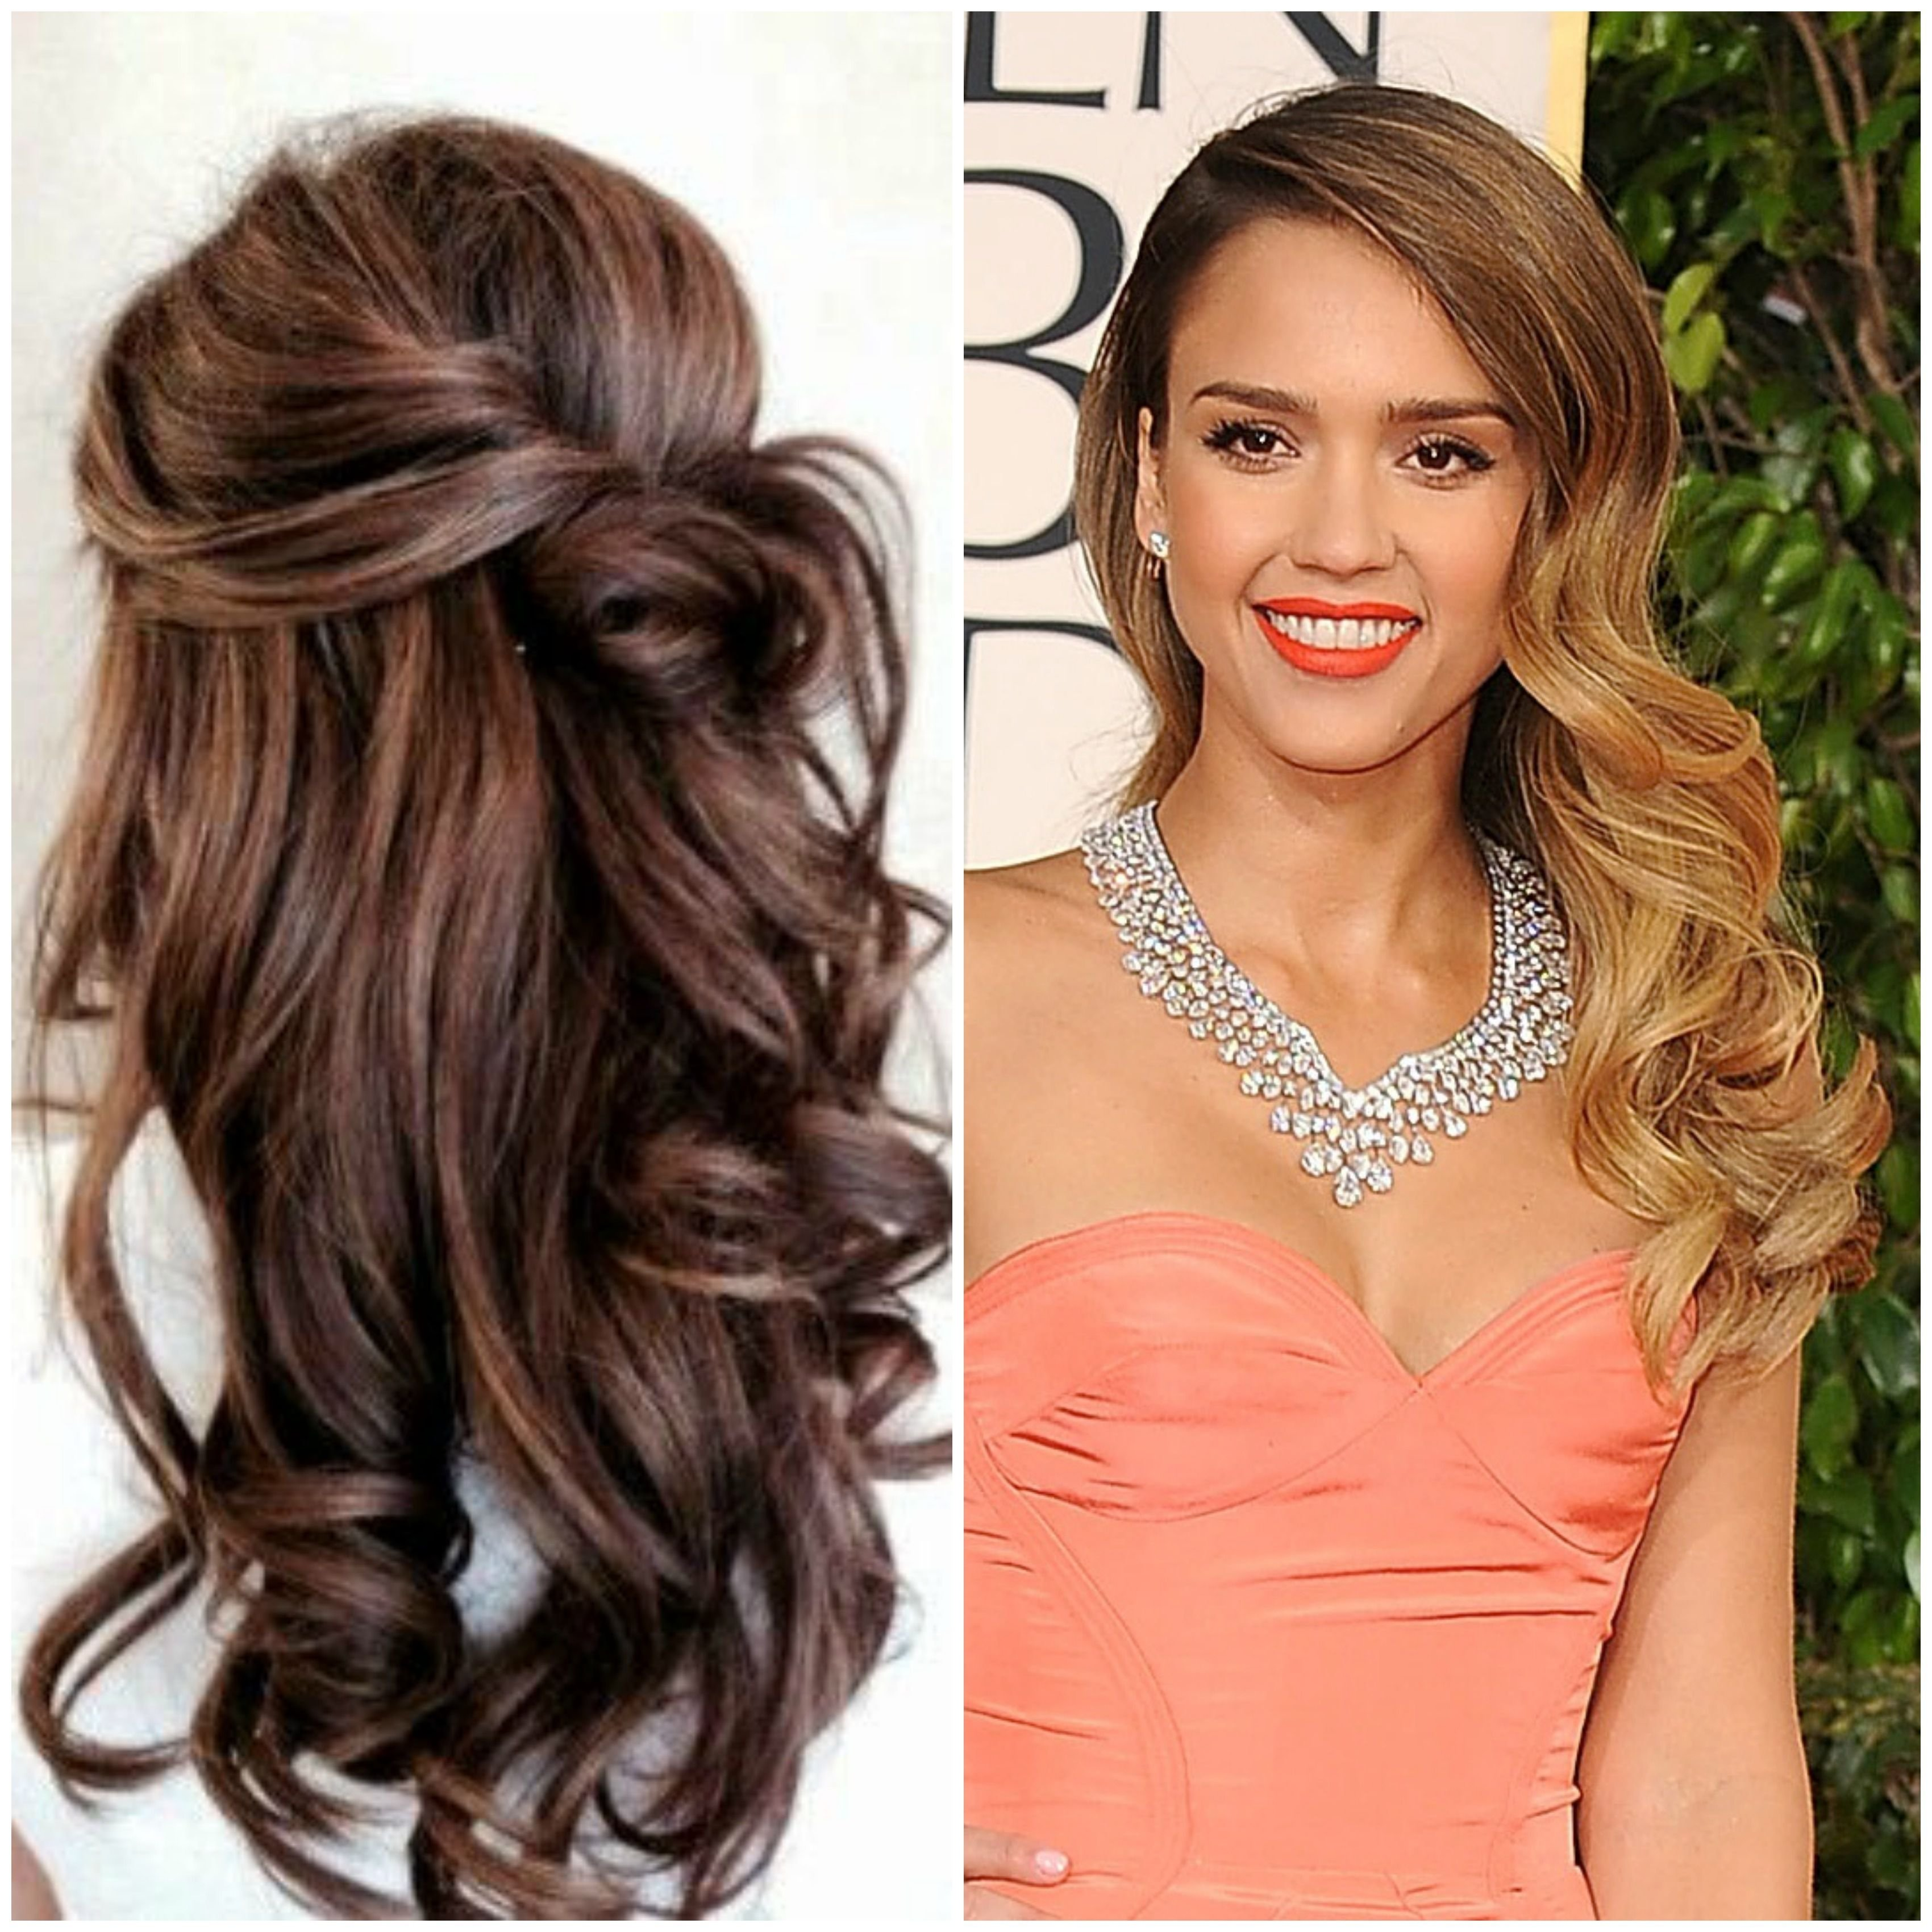 10 Most Recommended Prom Hair Ideas For Long Hair long hairstyle trends for prom no updos here 2020